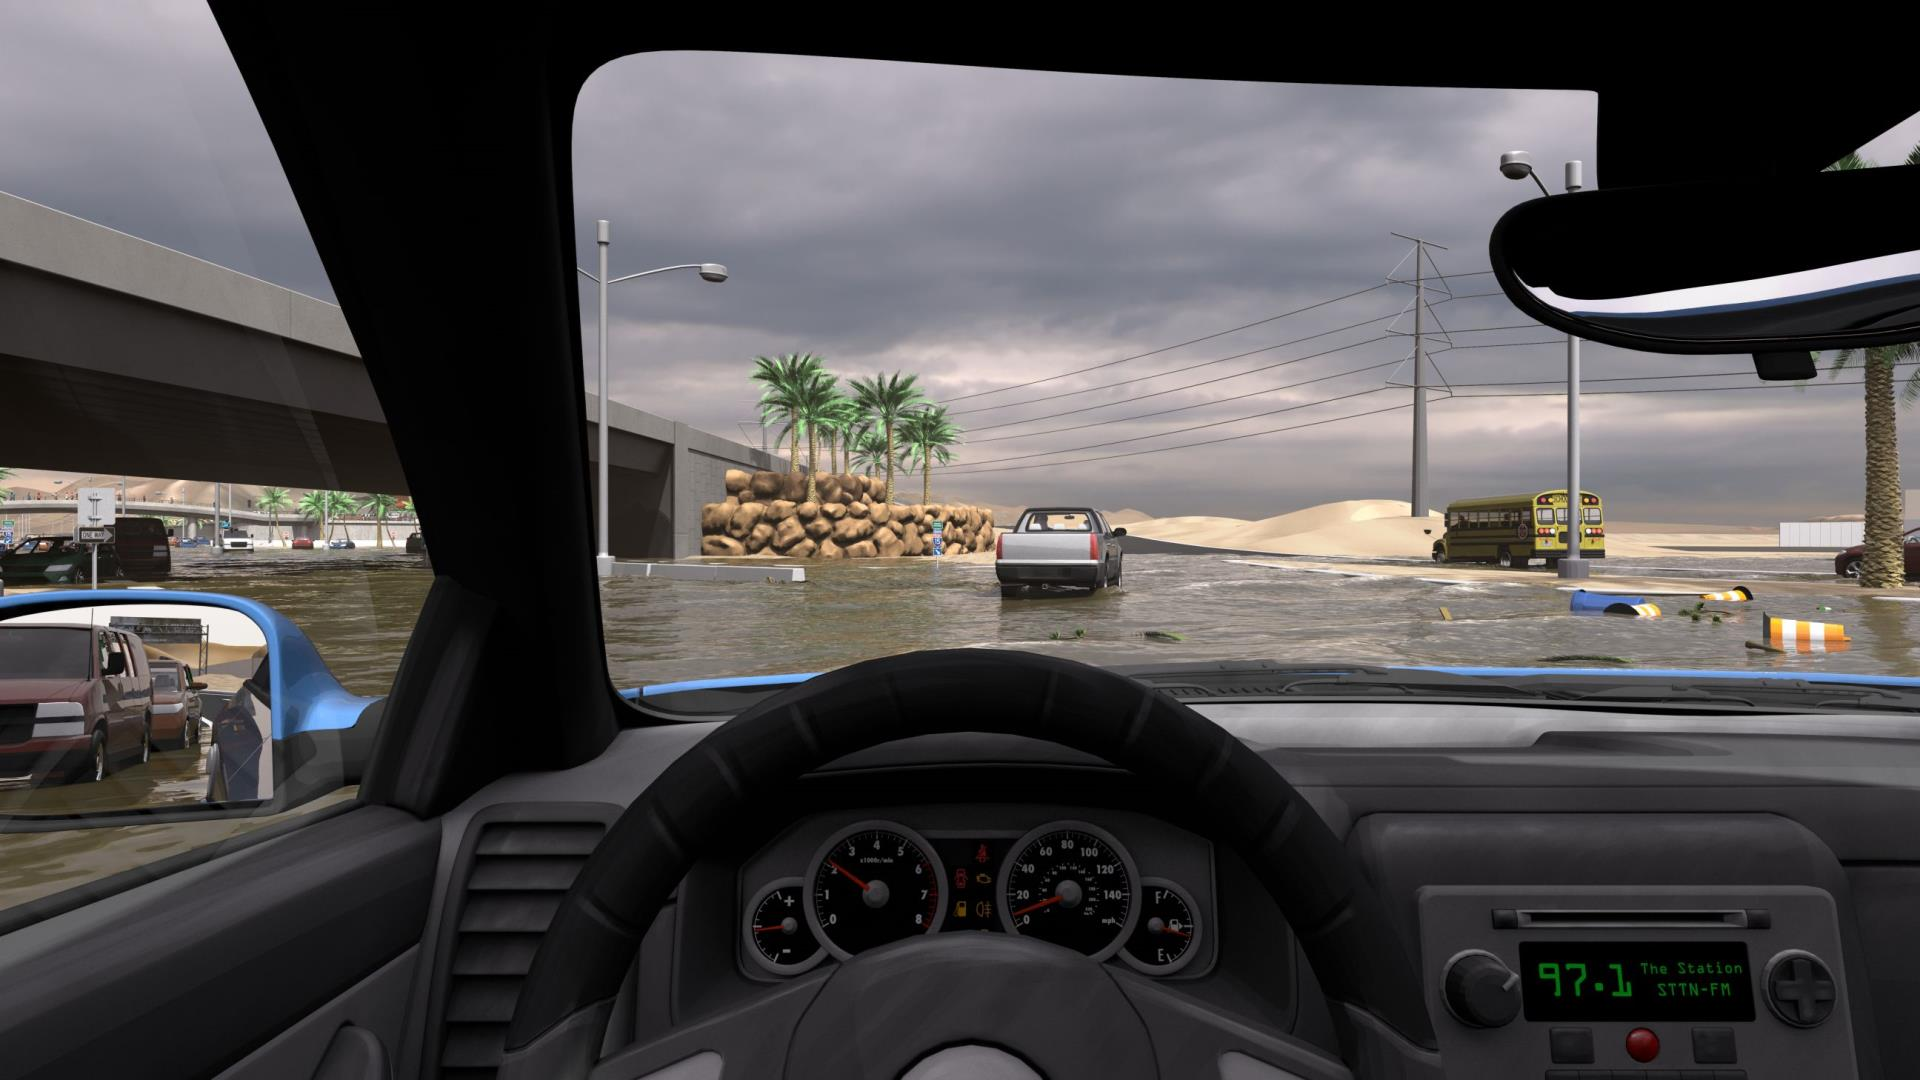 An animated image depicts a flooded roadway from inside the driver's seat of a car.